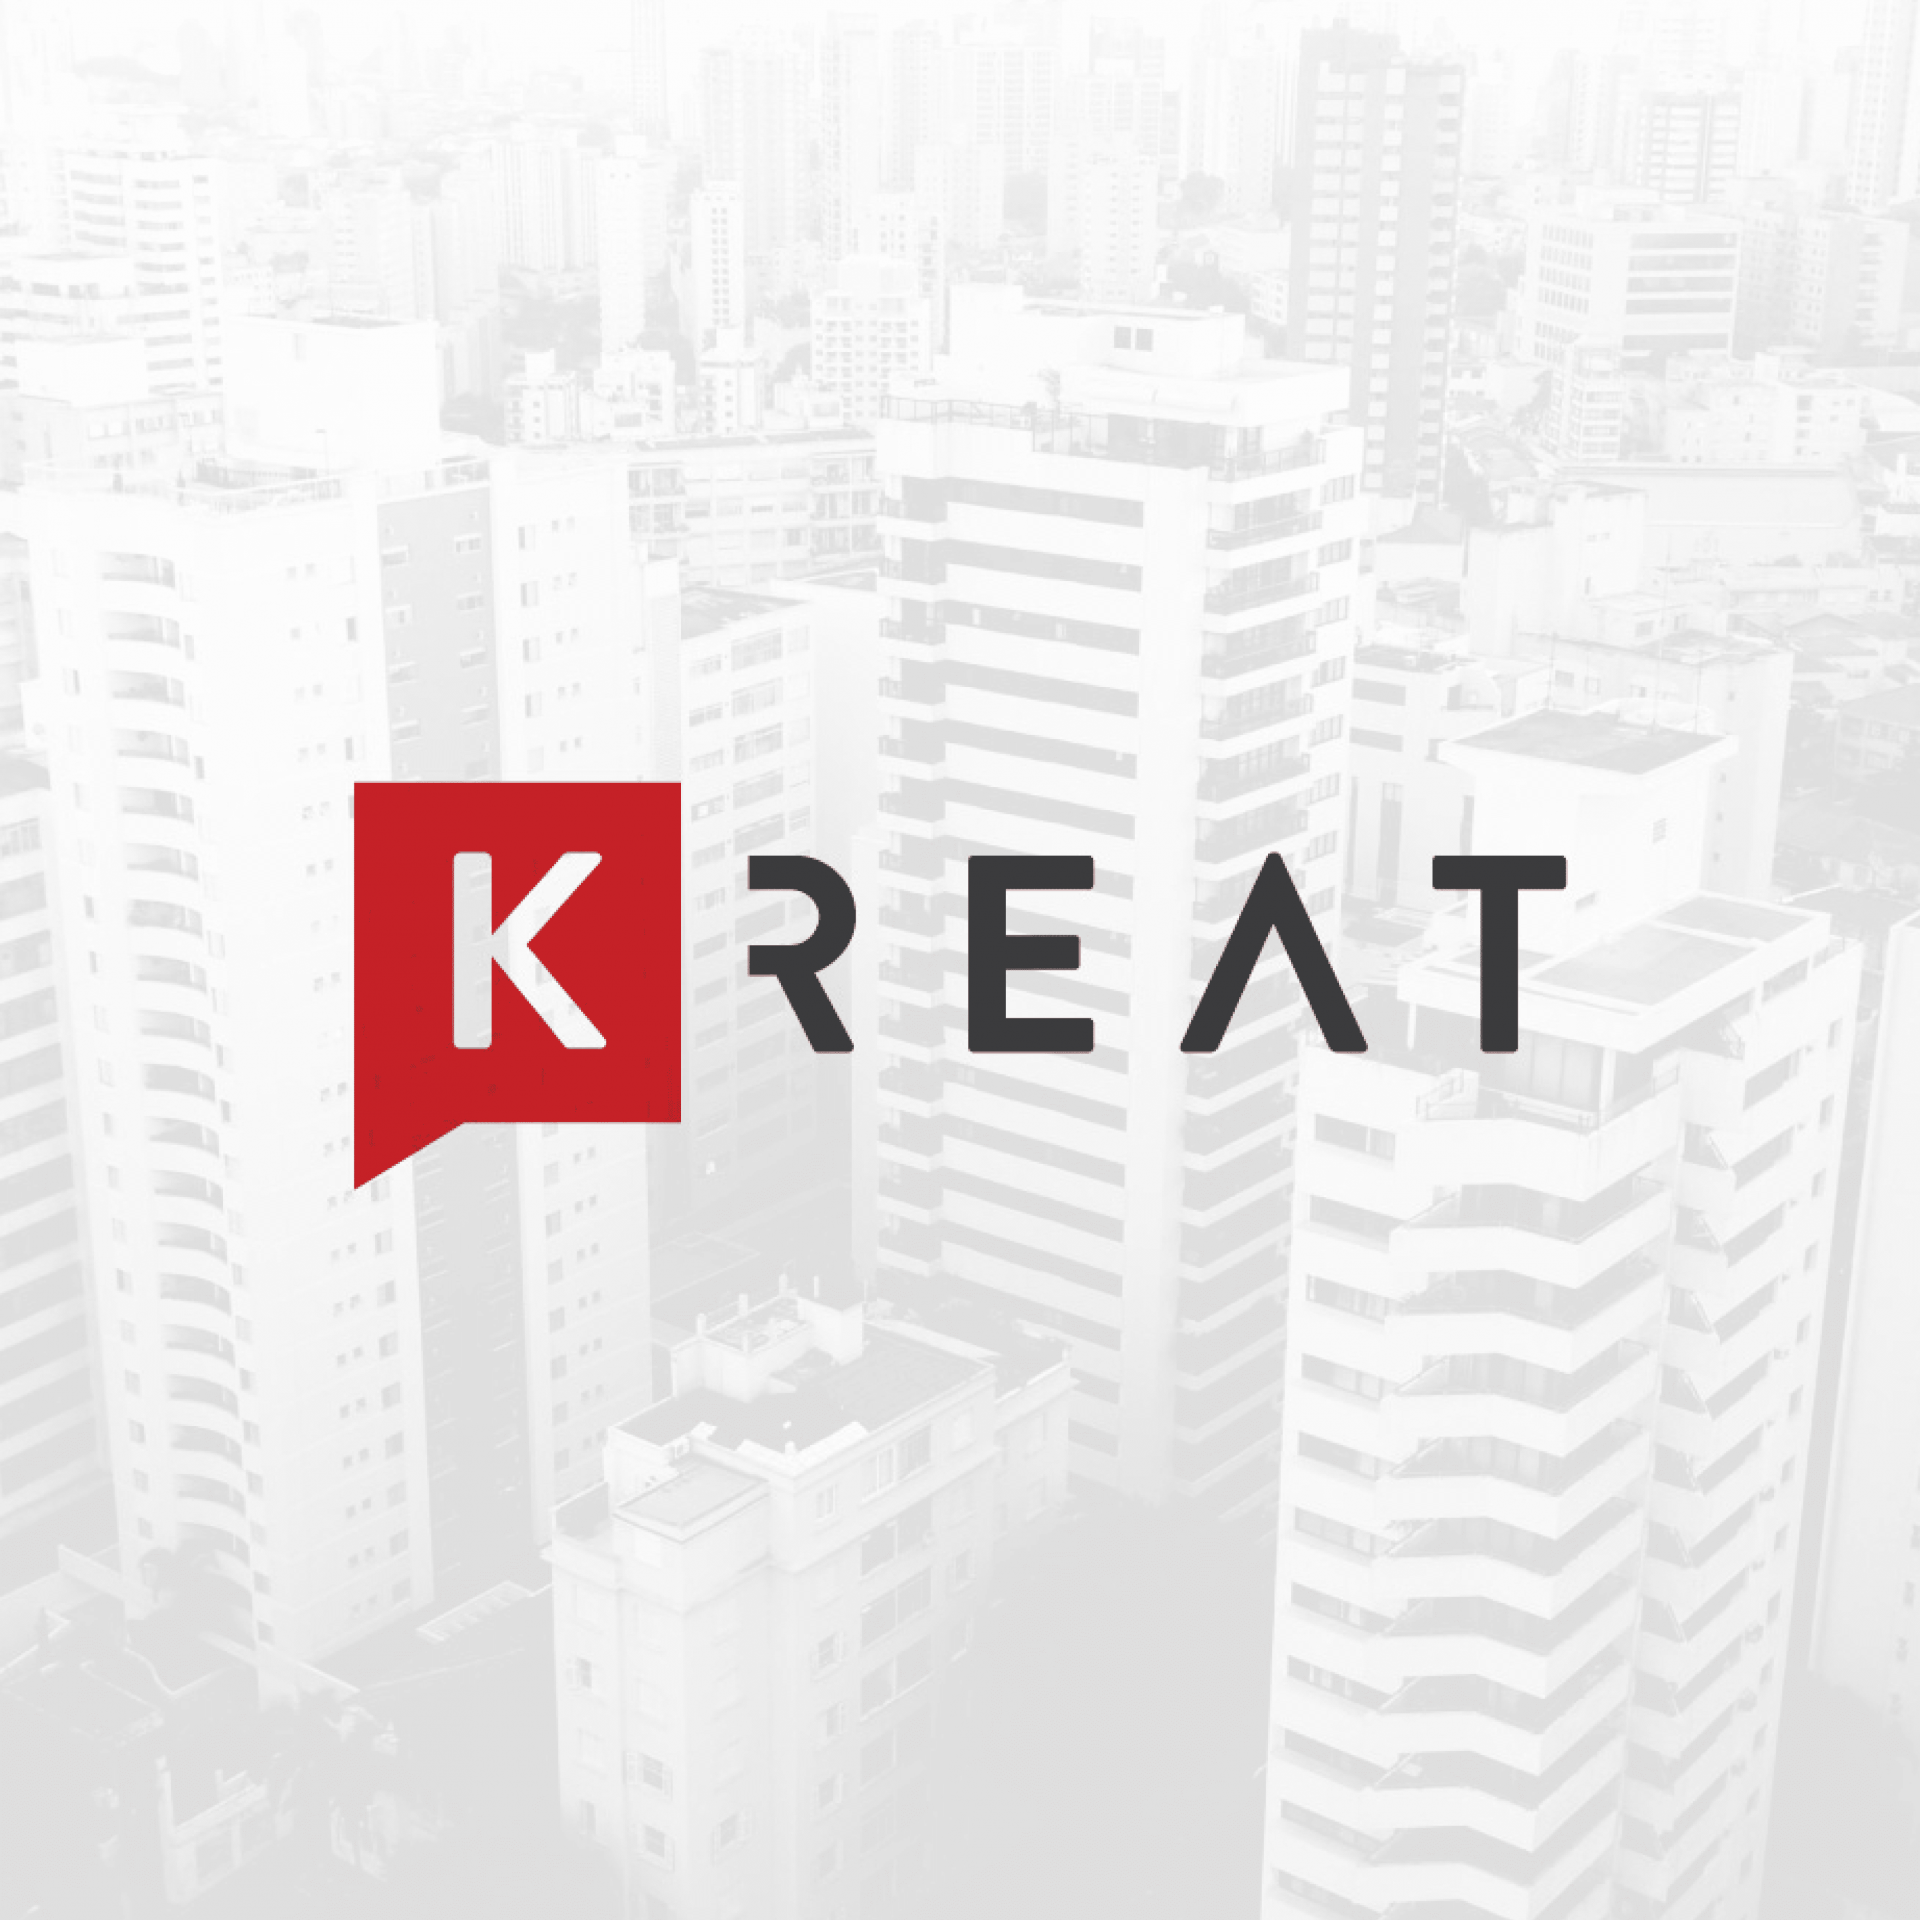 KREATE RESPONSIVE 01 - Kreat